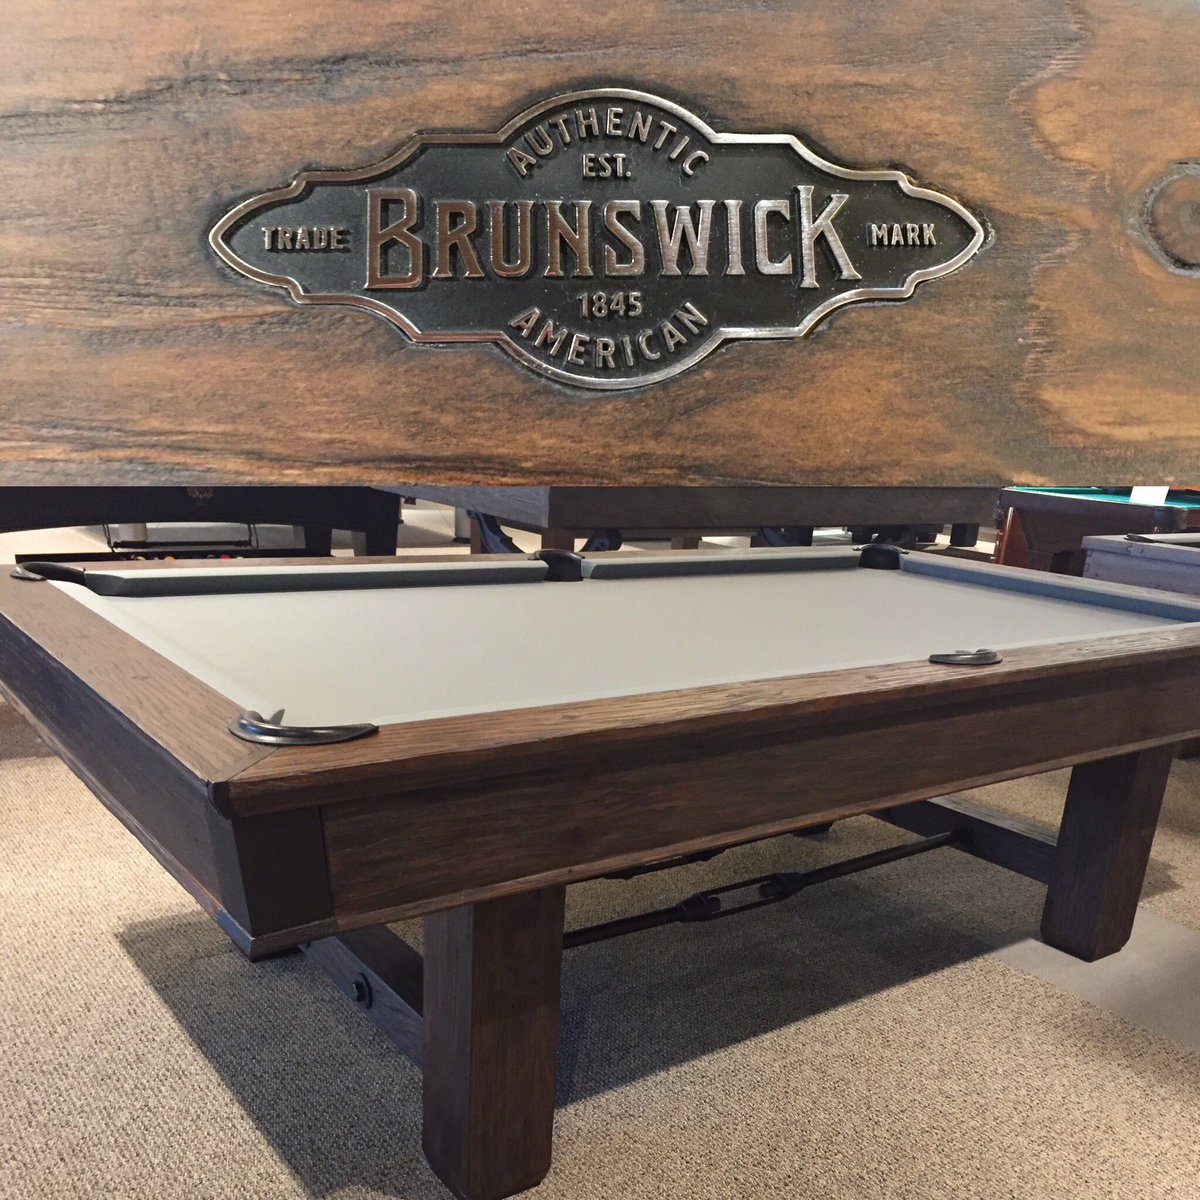 Peters Billiards On Twitter The New Brunswick Canton PoolTable - New brunswick pool table